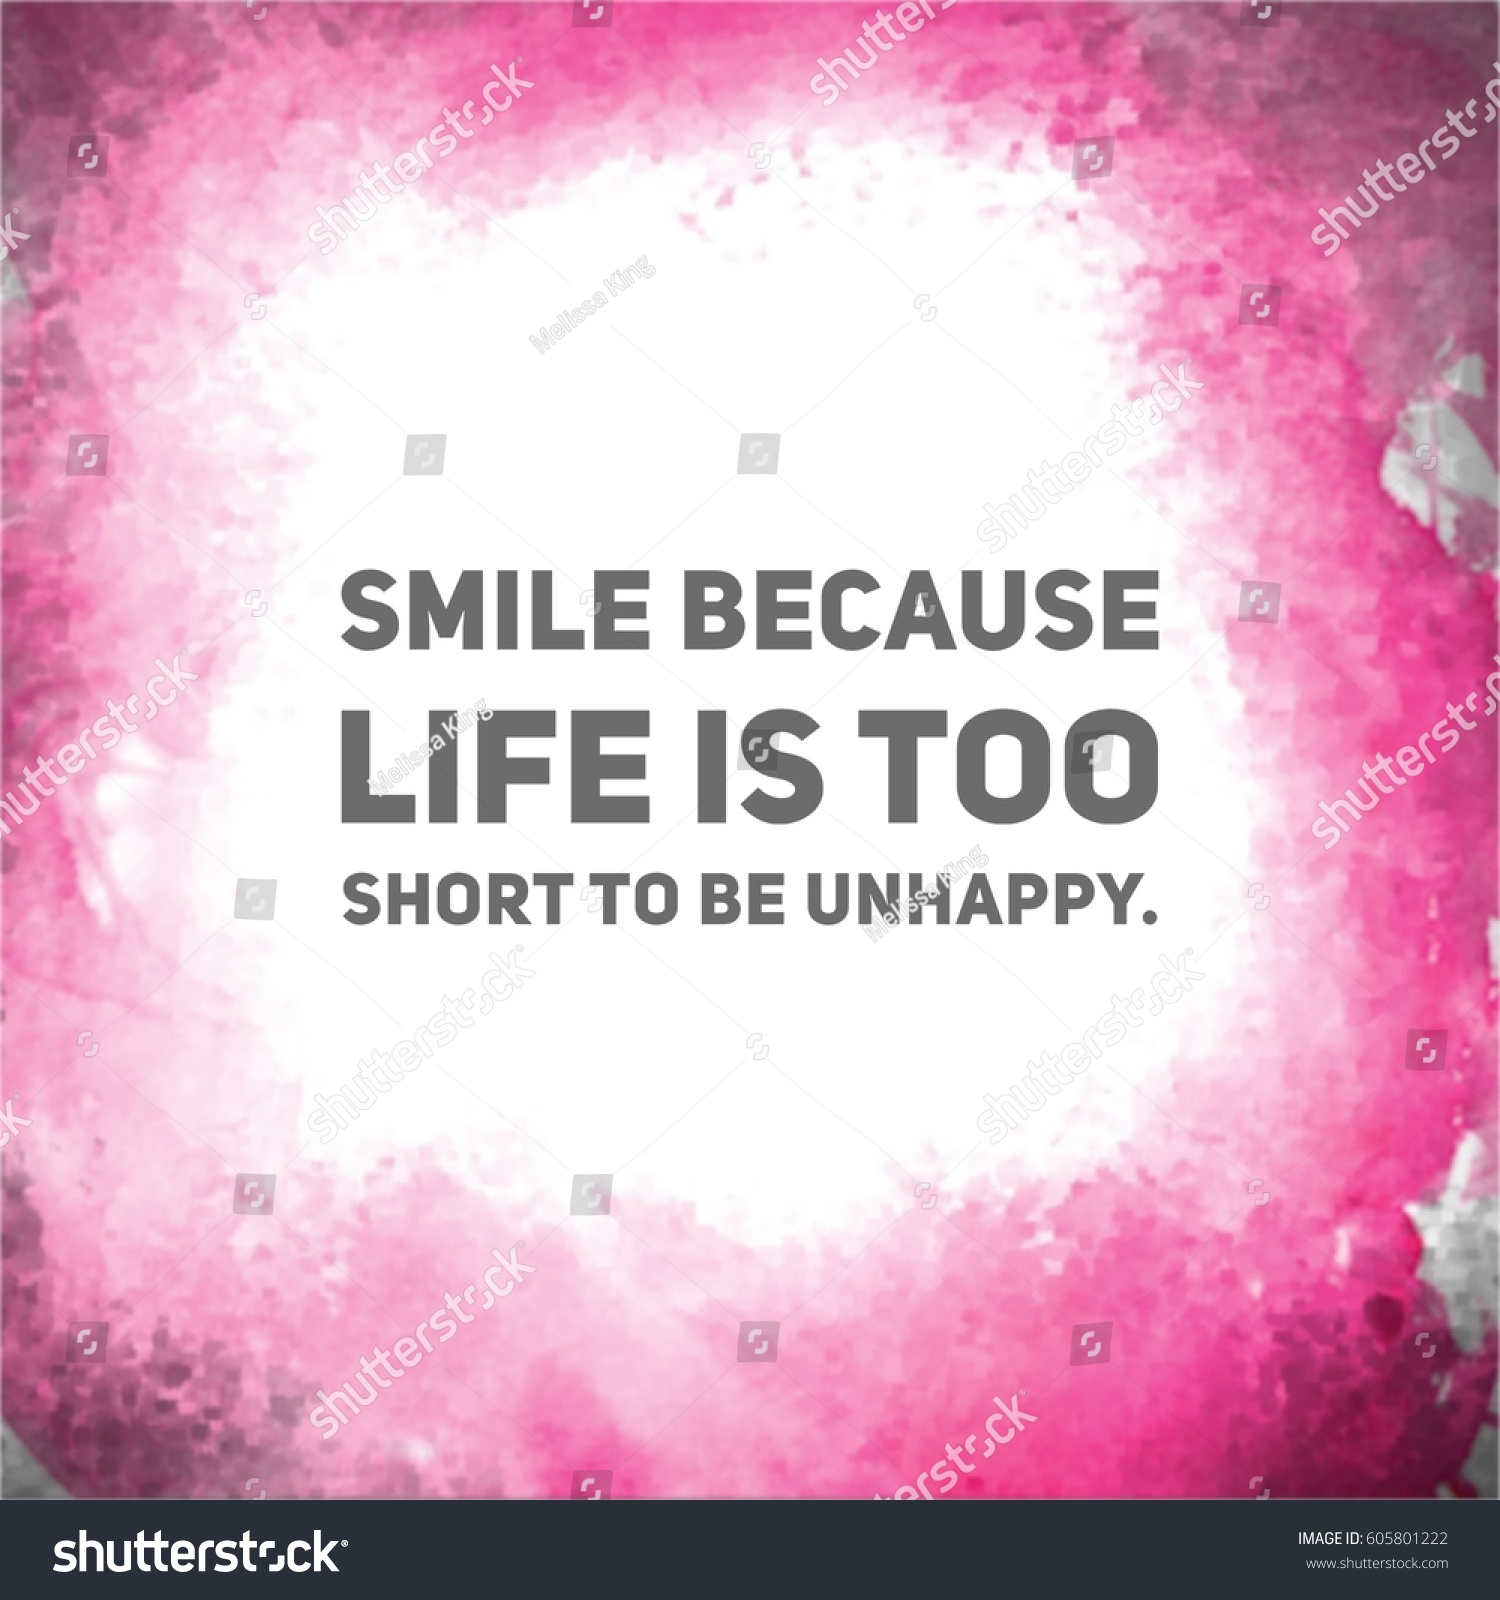 Shorts Quotes About Life 100  Quotes Life Is Too Short To Be Unhappy   How To Be